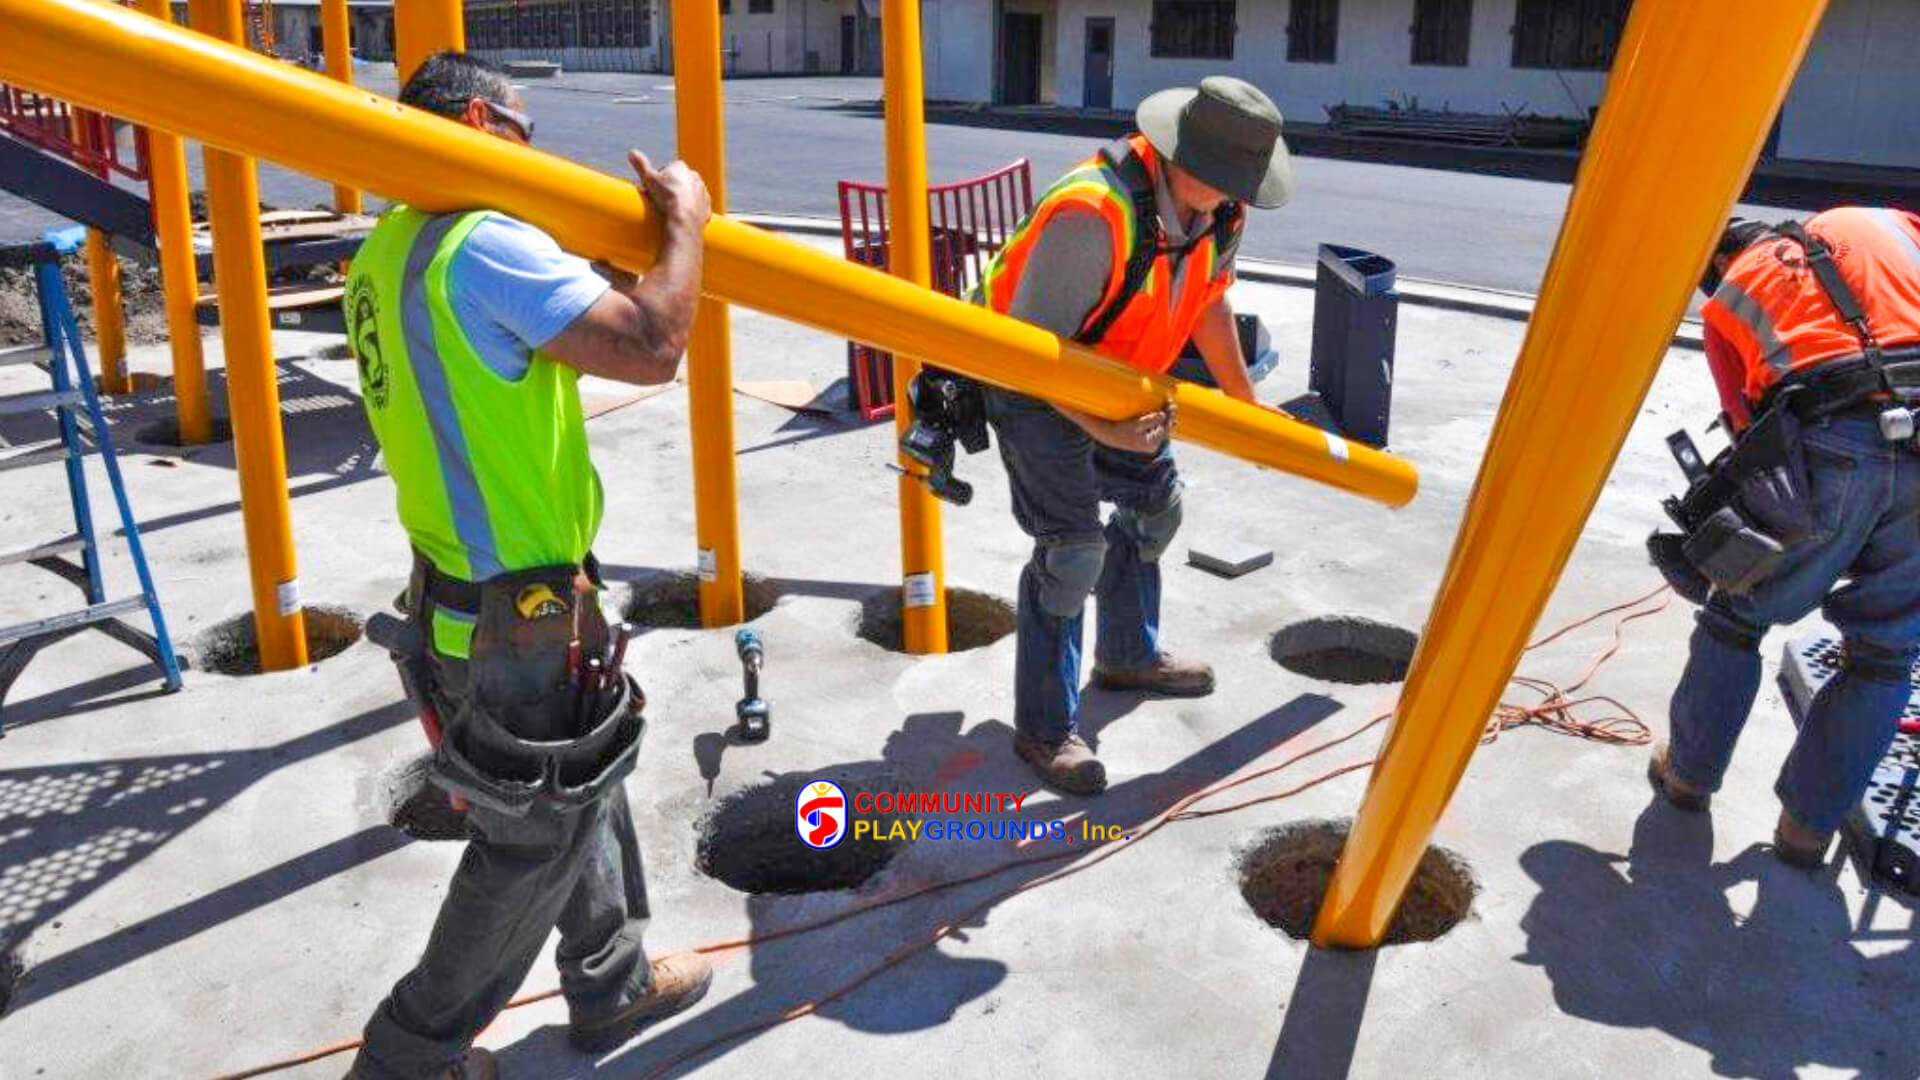 Playground Equipment Installers on the job site